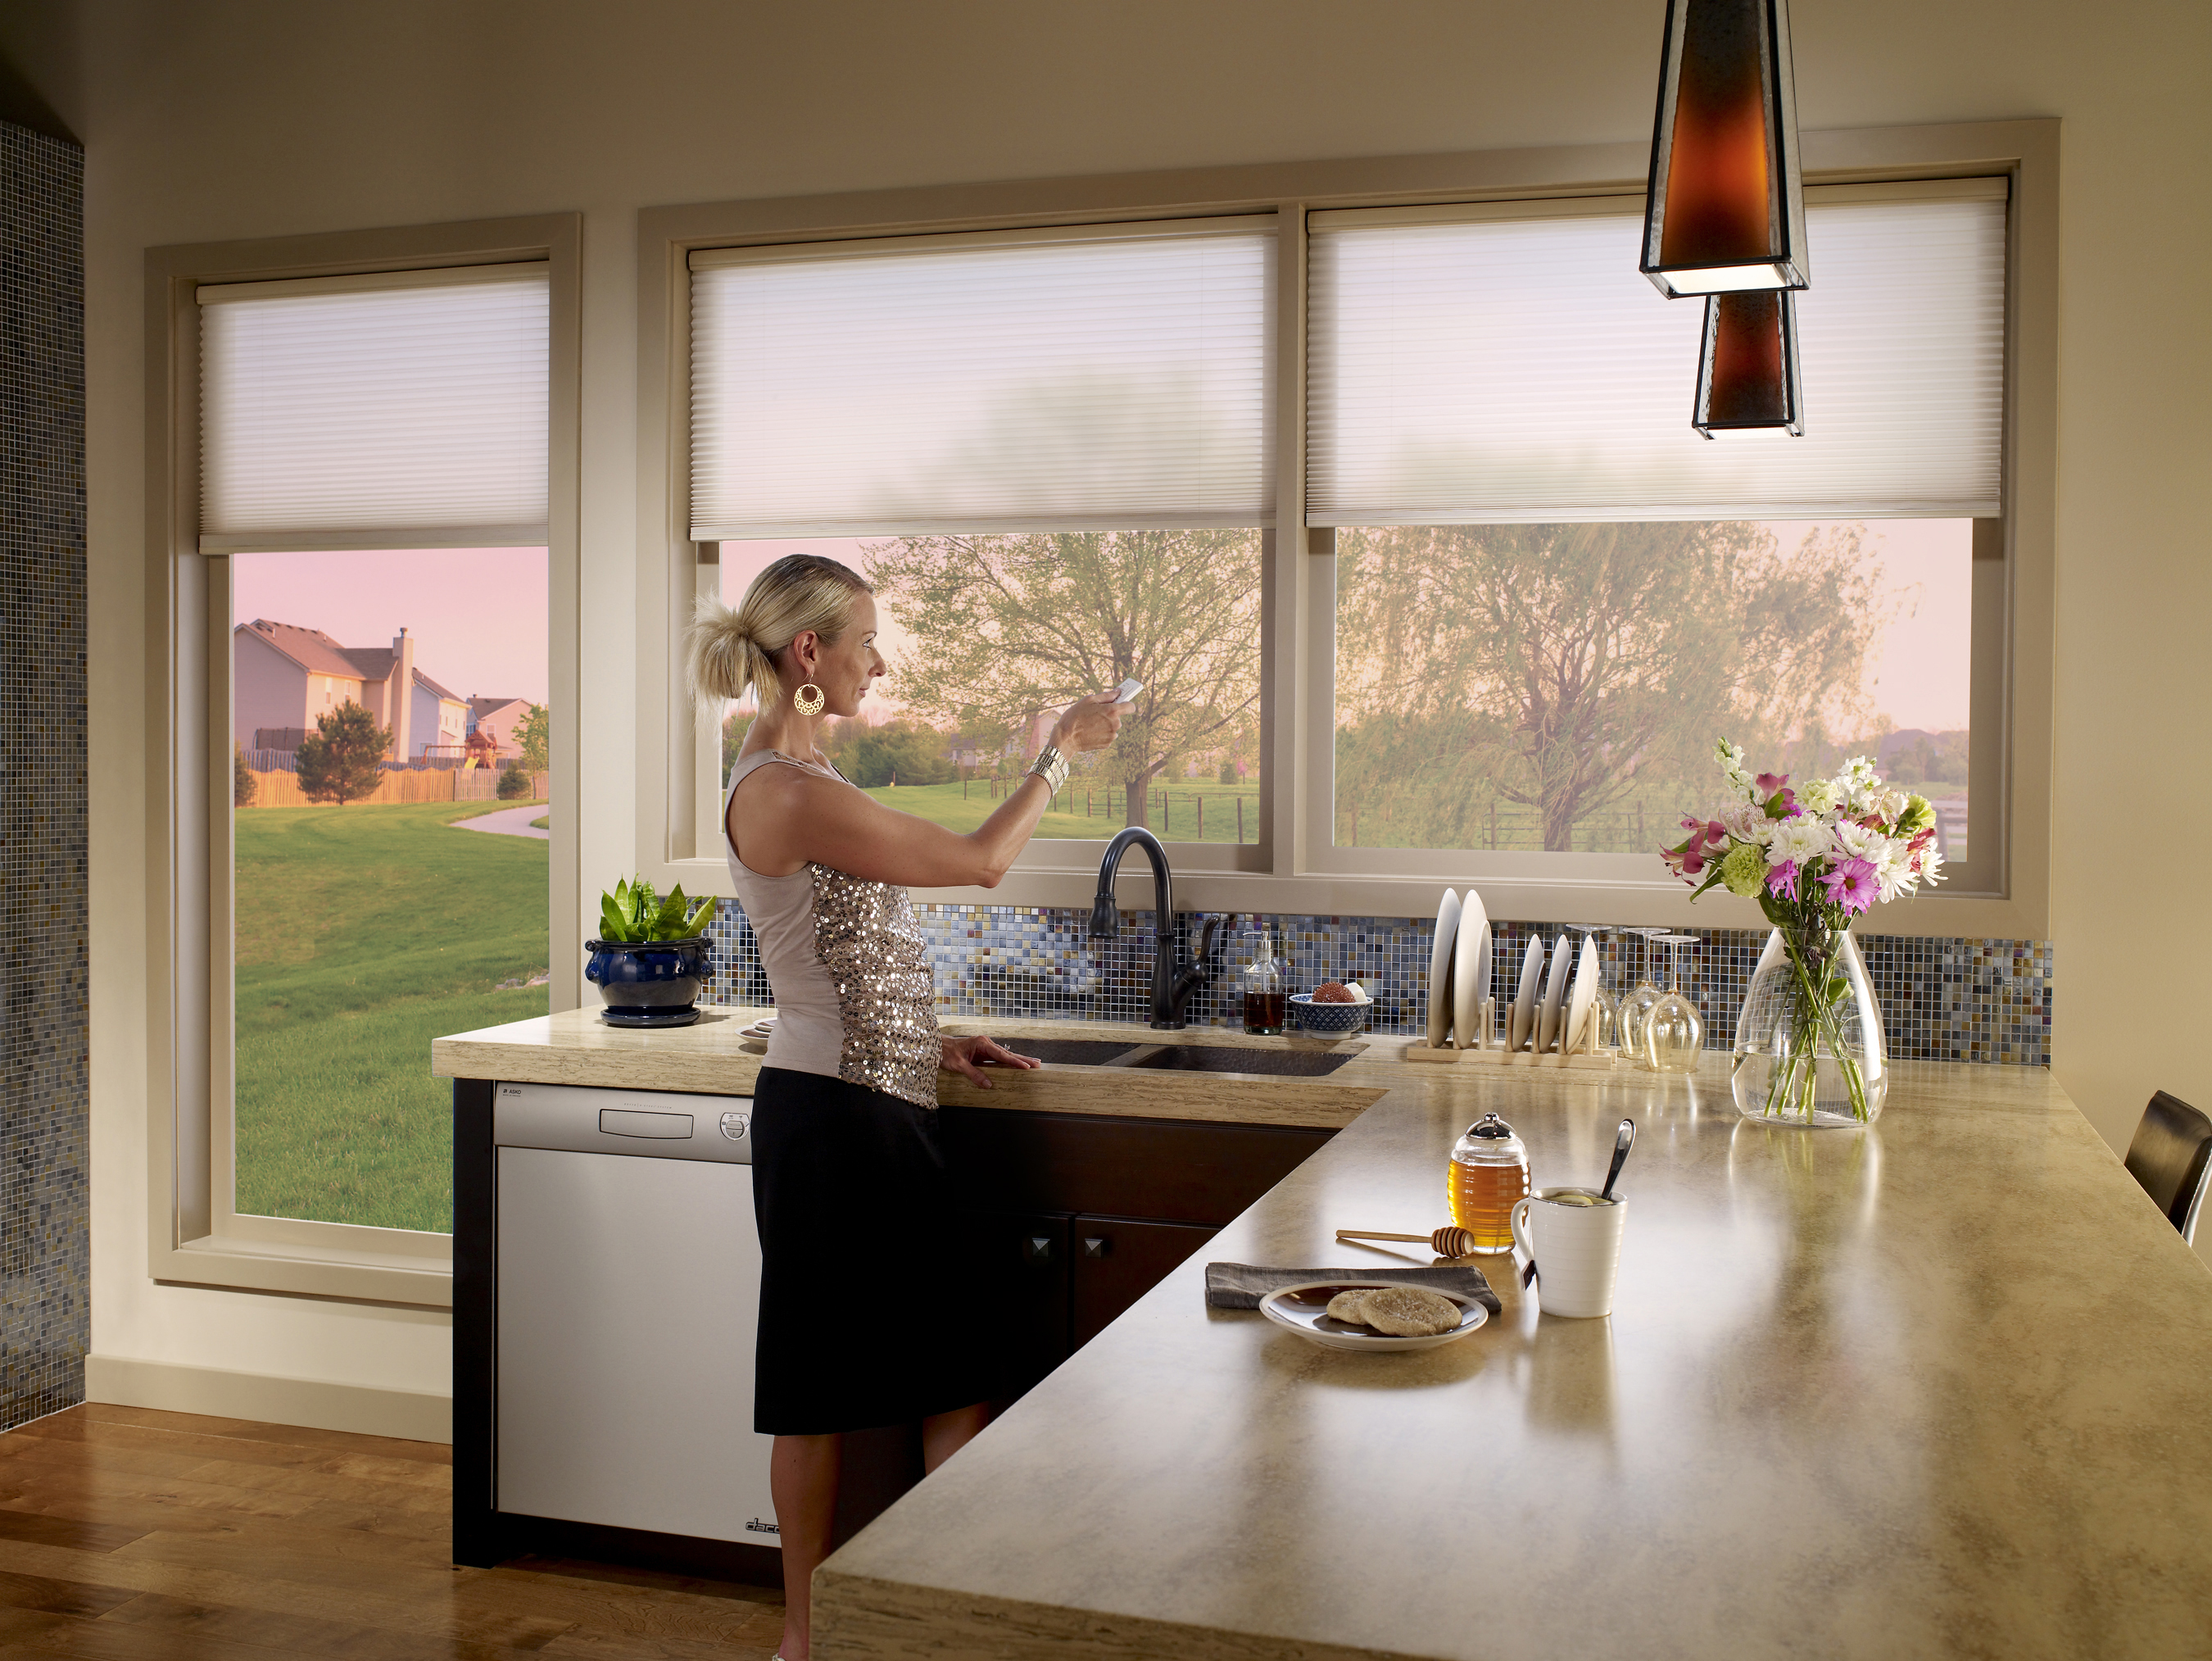 How Can You Experience the Benefits of Motorized Shades?